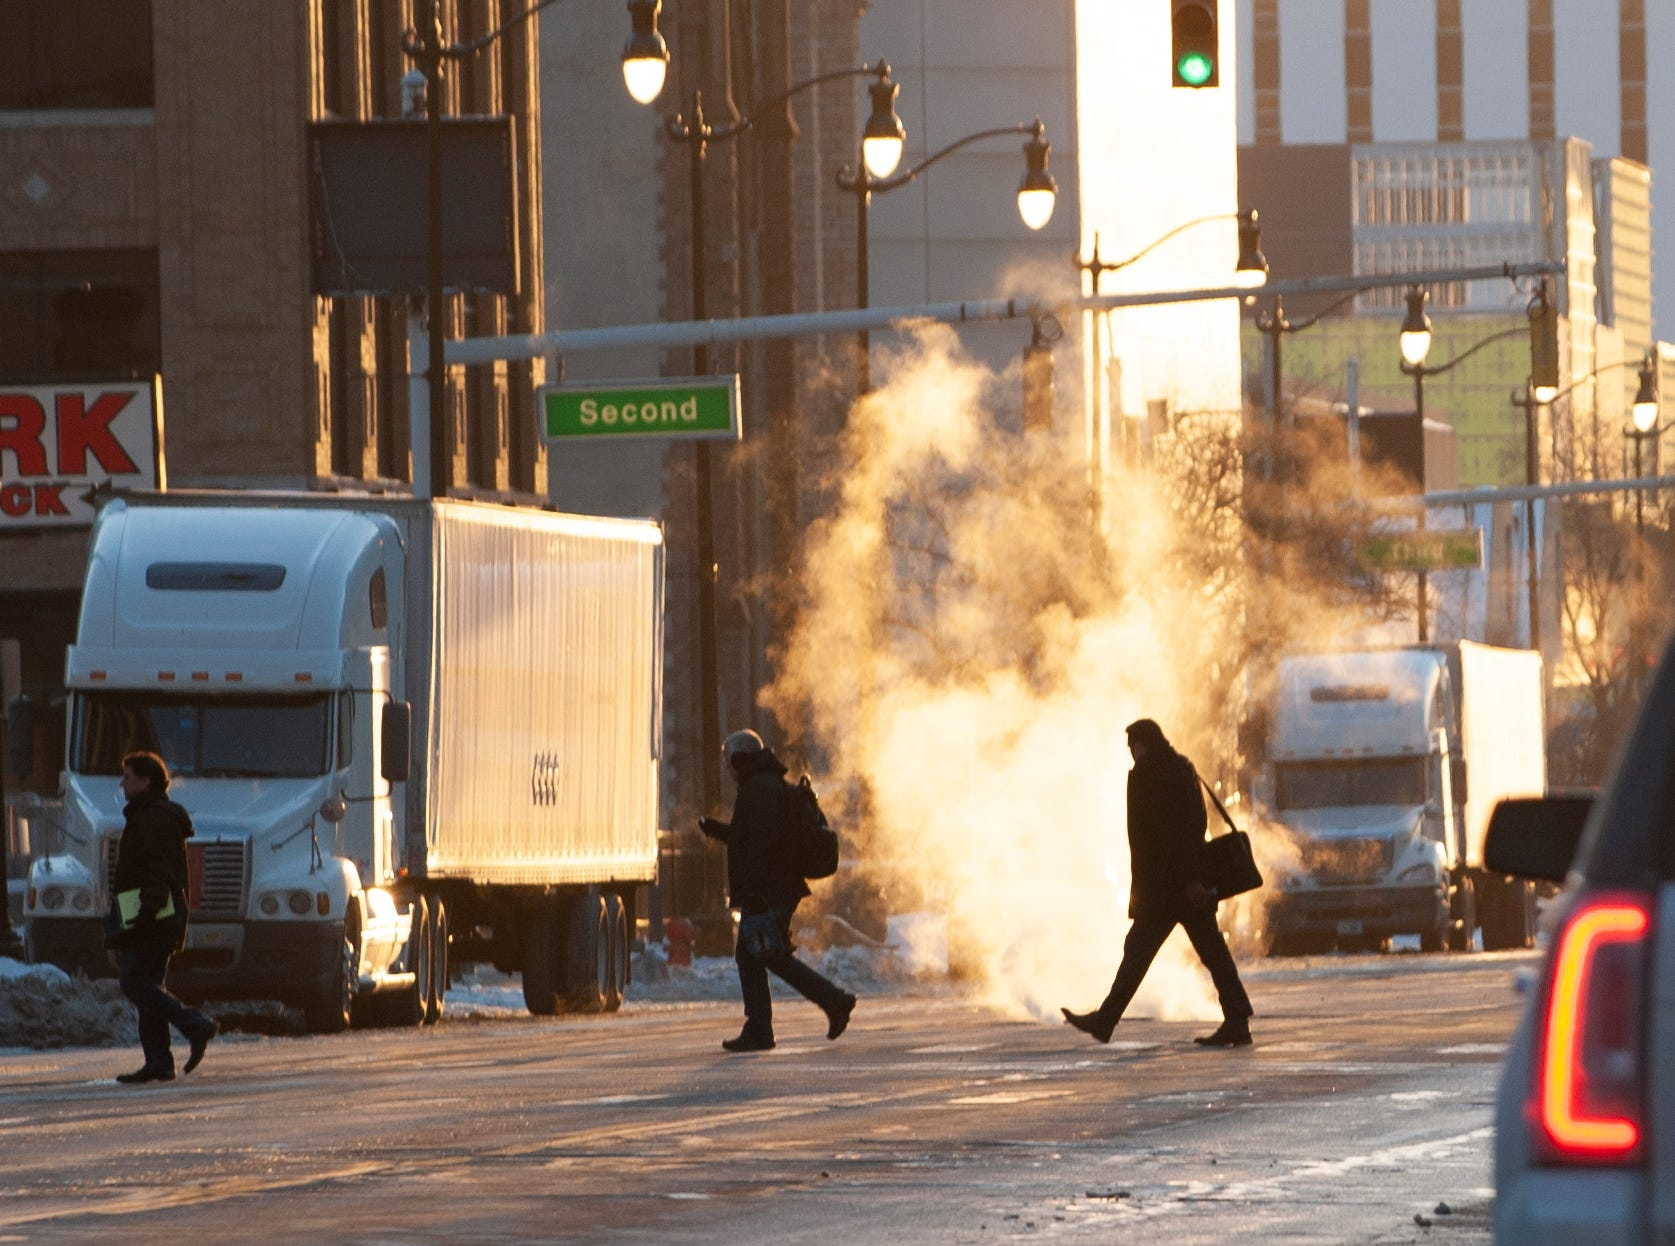 Temperatures rose above zero Friday, but things were still extremely frigid as commuters cross Fort Street in downtown Detroit around 5 p.m. with temperatures hovering around 10-degrees on Friday, February 1, 2019.